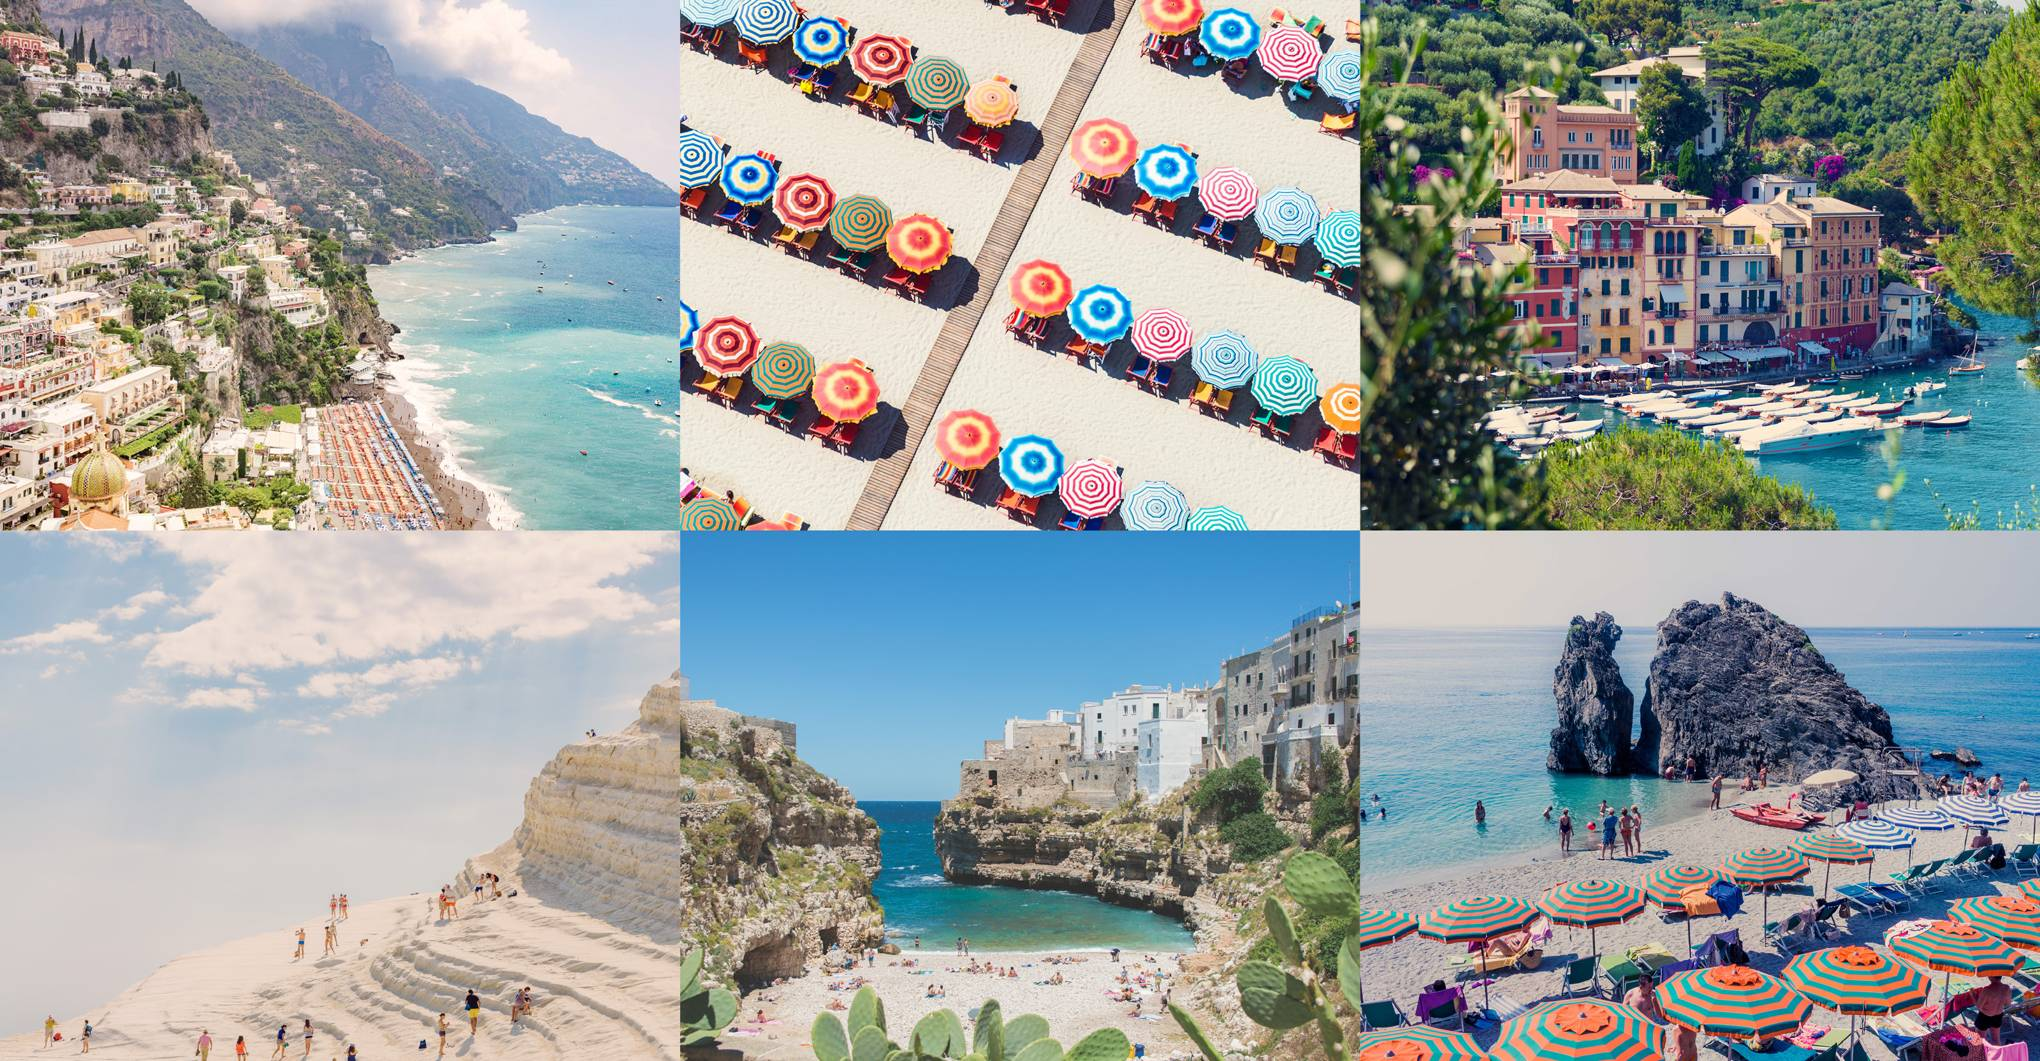 Dreamy Italy images by photographer Gray Malin